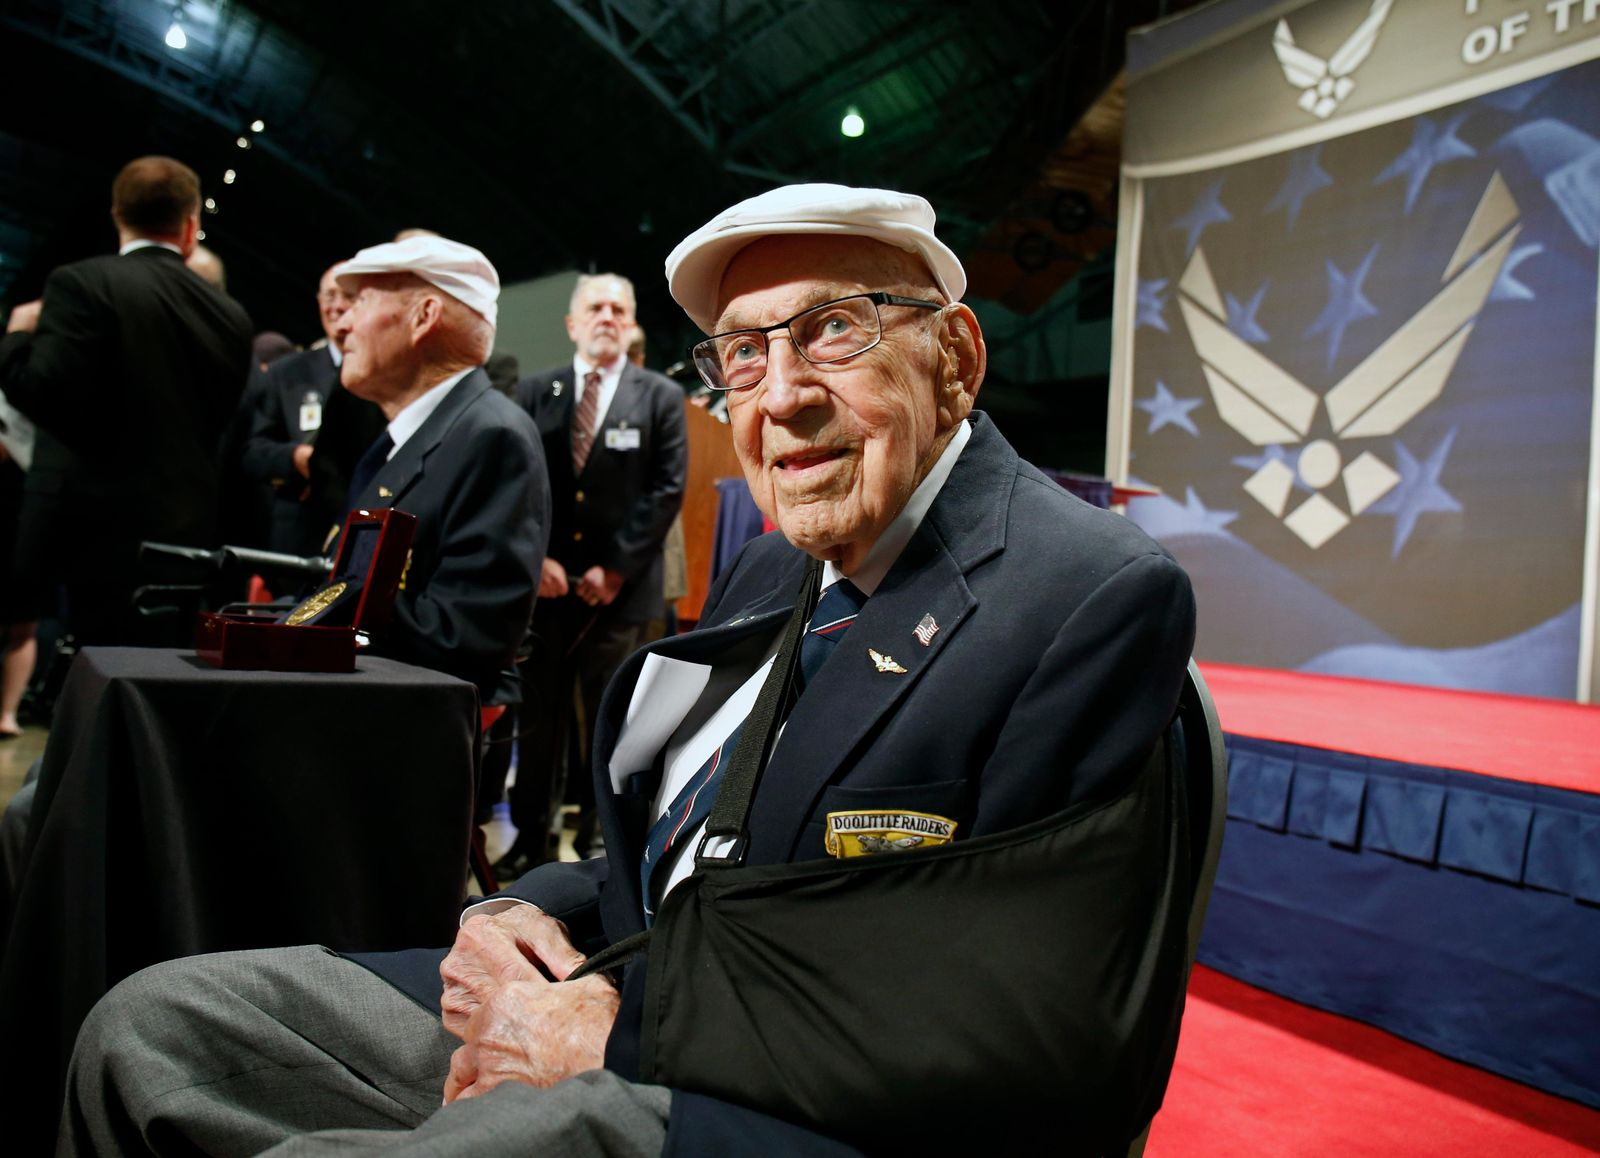 "FILE - In this April 18, 2015, file photo, two members of the Doolittle Tokyo Raiders, retired U.S. Air Force Lt. Col. Richard ""Dick"" Cole, seated front, and retired Staff Sgt. David Thatcher, seated left, pose for photos after the presentation of a Congressional Gold Medal honoring the Doolittle Tokyo Raiders at the National Museum of the U.S. Air Force at Wright-Patterson Air Force Base in Dayton, Ohio. Retired Lt. Col. Richard ""Dick"" Cole, the last of the 80 Doolittle Tokyo Raiders who carried out the daring U.S. attack on Japan during World War II, has died at a military hospital in Texas. He was 103. A spokesman says Cole died Tuesday, April 9, 2019, at Brooke Army Medical Center in San Antonio, Texas. (AP Photo/Gary Landers, File)"